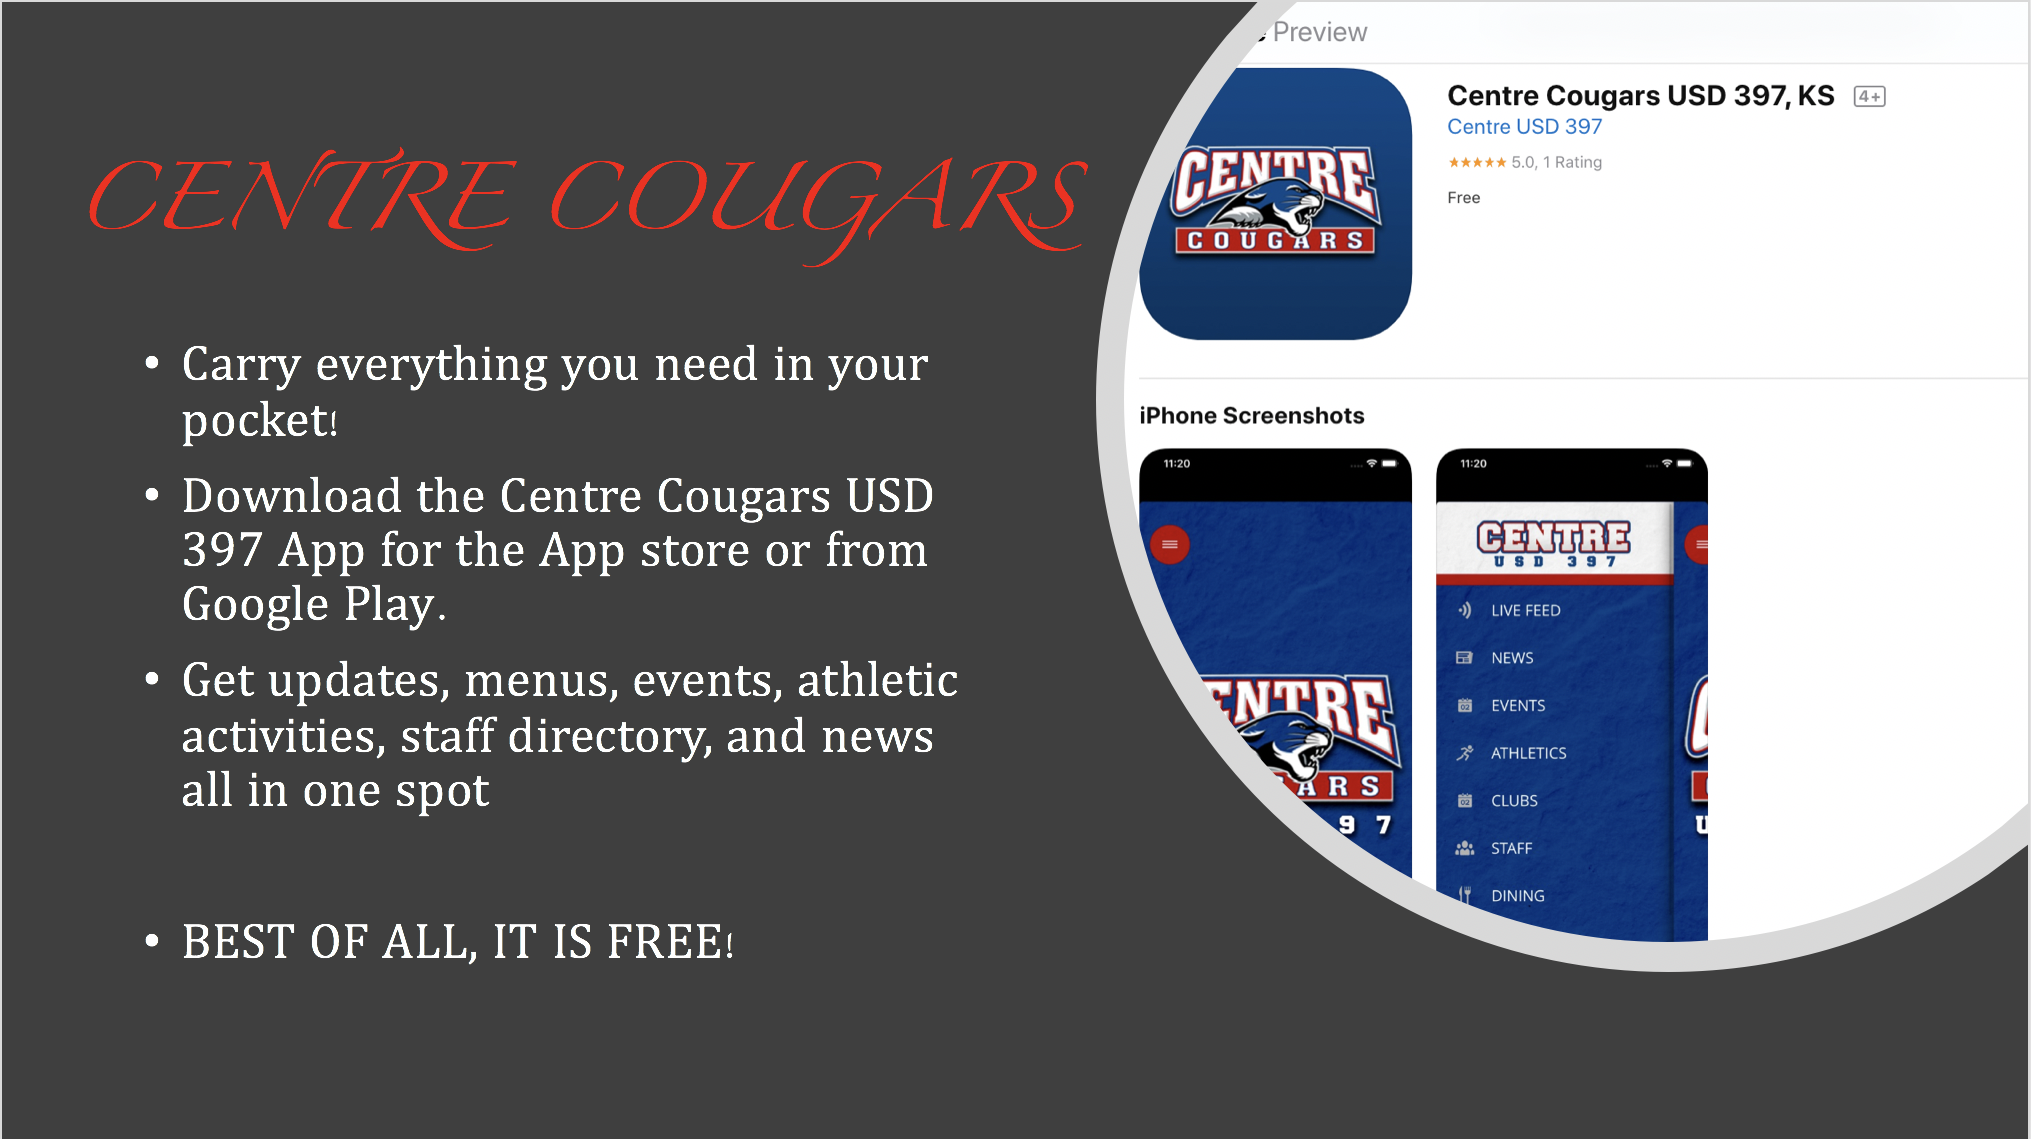 Please download the Centre Cougar App.